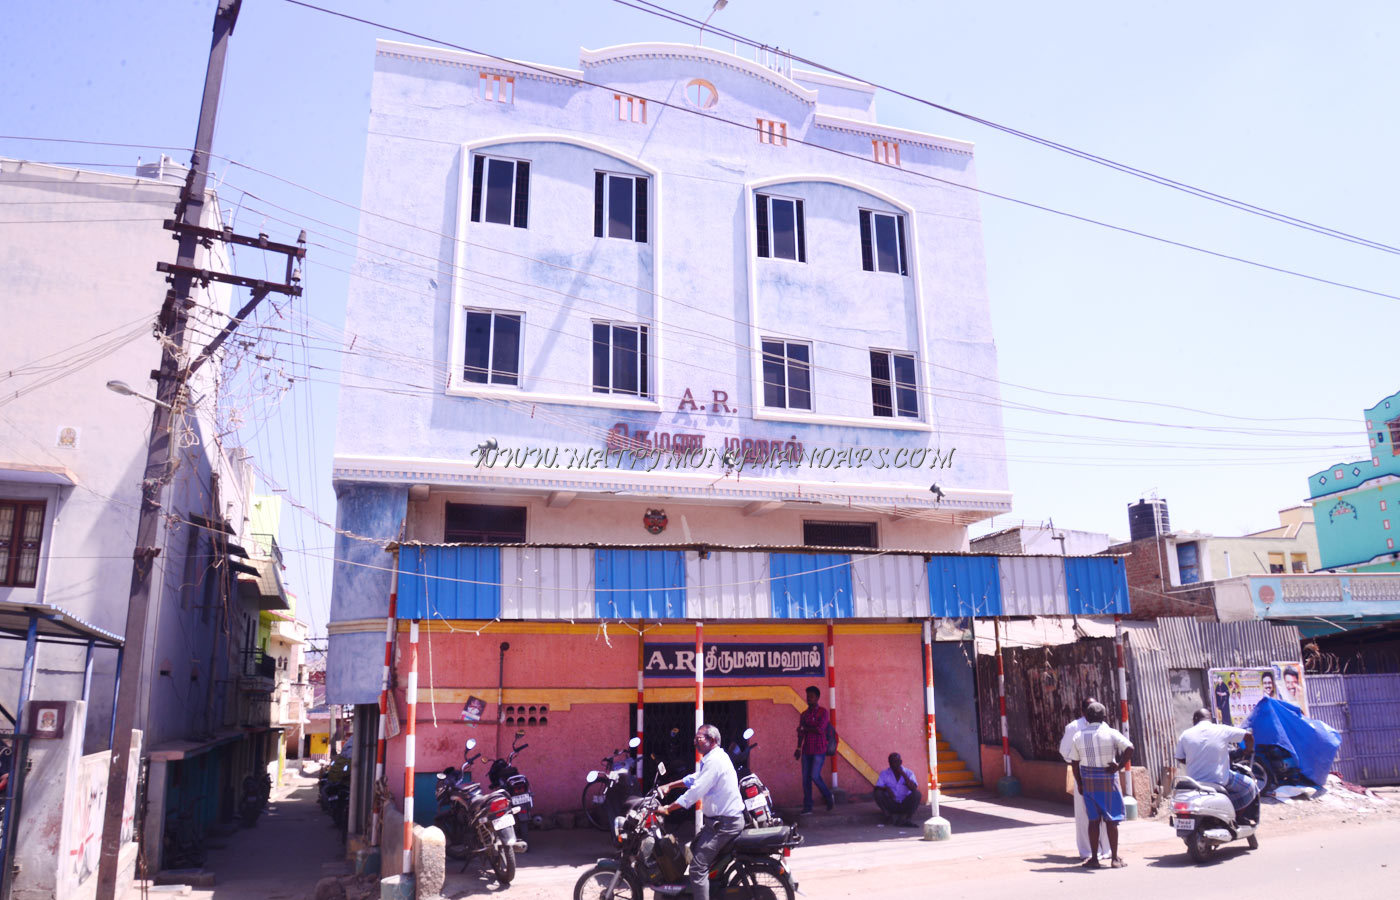 Find More Kalyana Mandapams in Anuppanadi